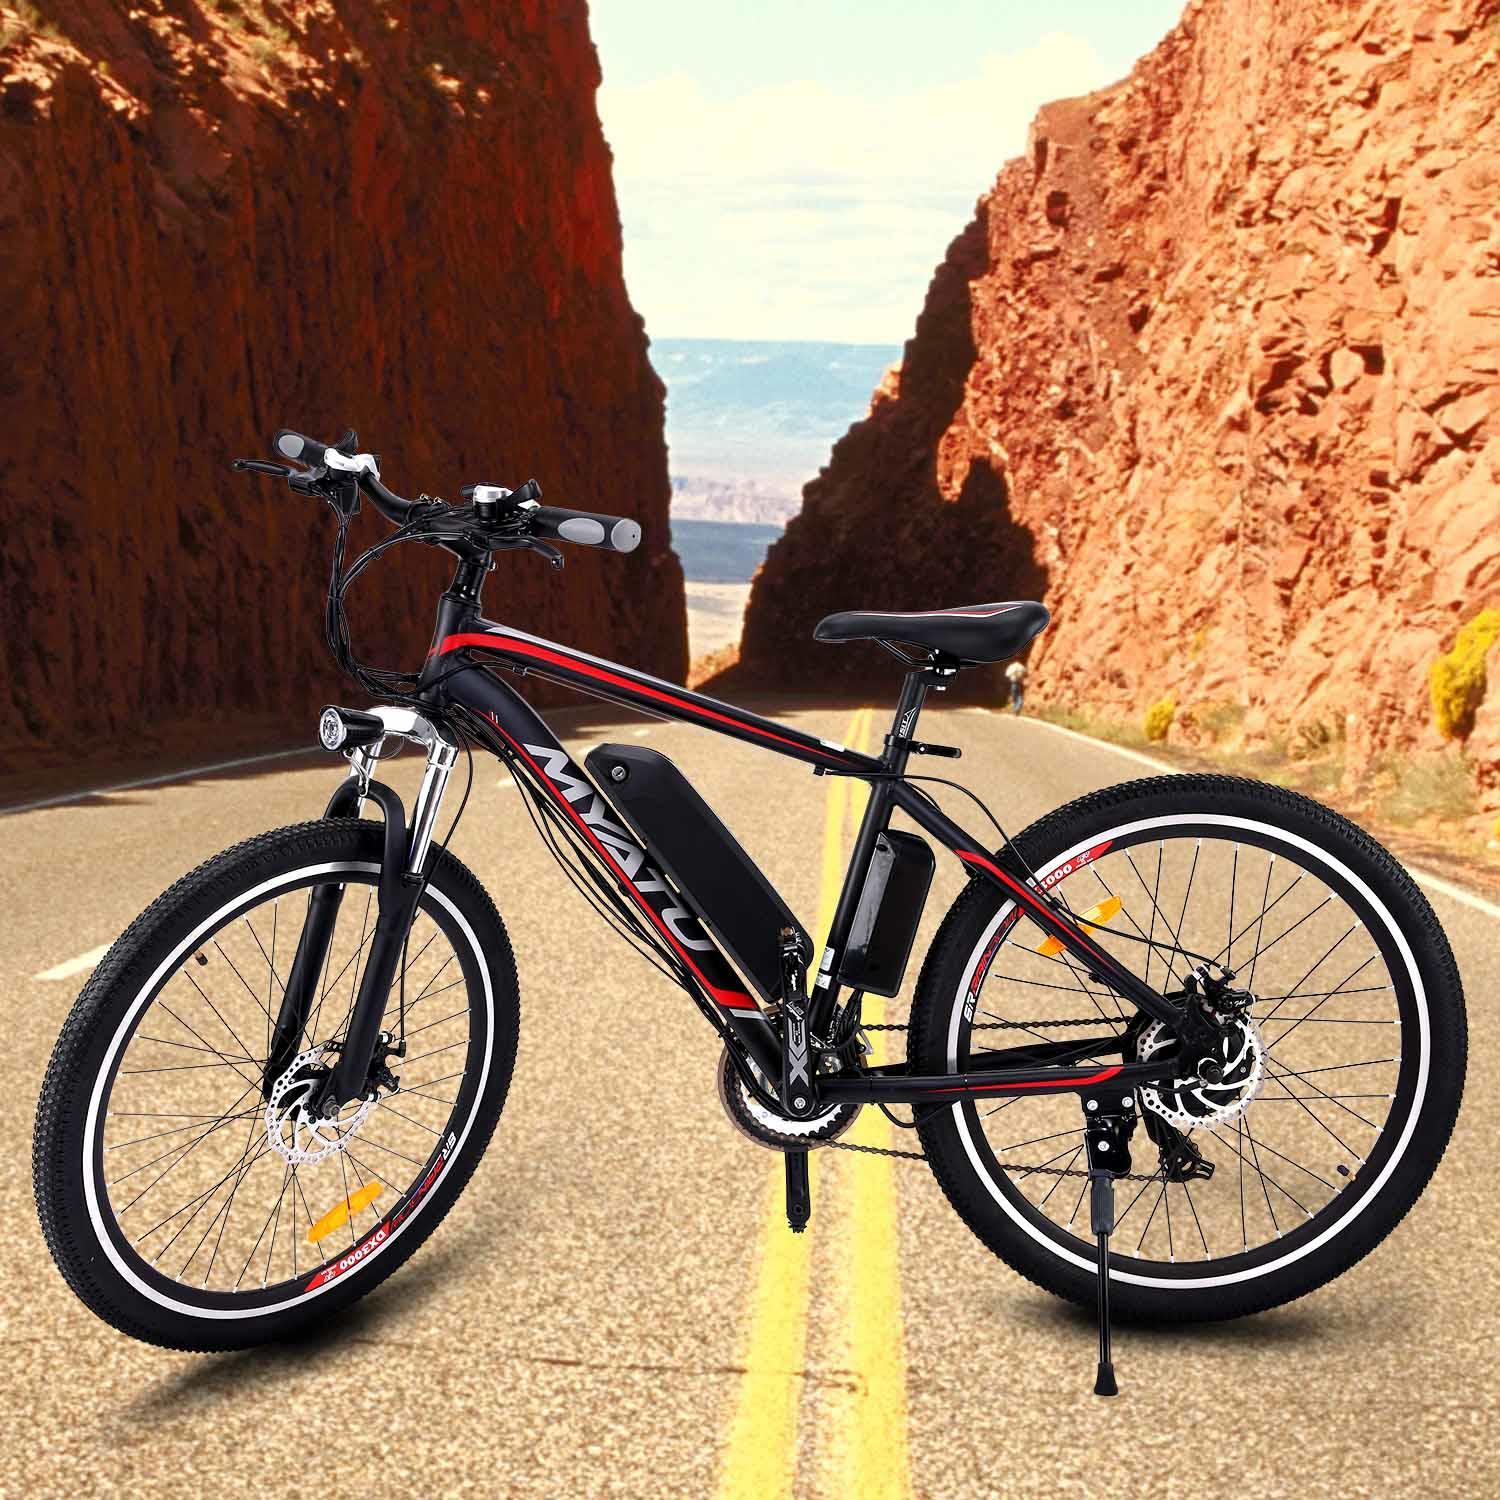 "ANCHEER Newest Designe Fast 26""21 Speed 36V Electric Mountain Bicycle for Adults with Removable Lithium-ion Battery Integrated Mens Electric Bike, With LED Handlebar Display, LED Headlight[US STOCK]"